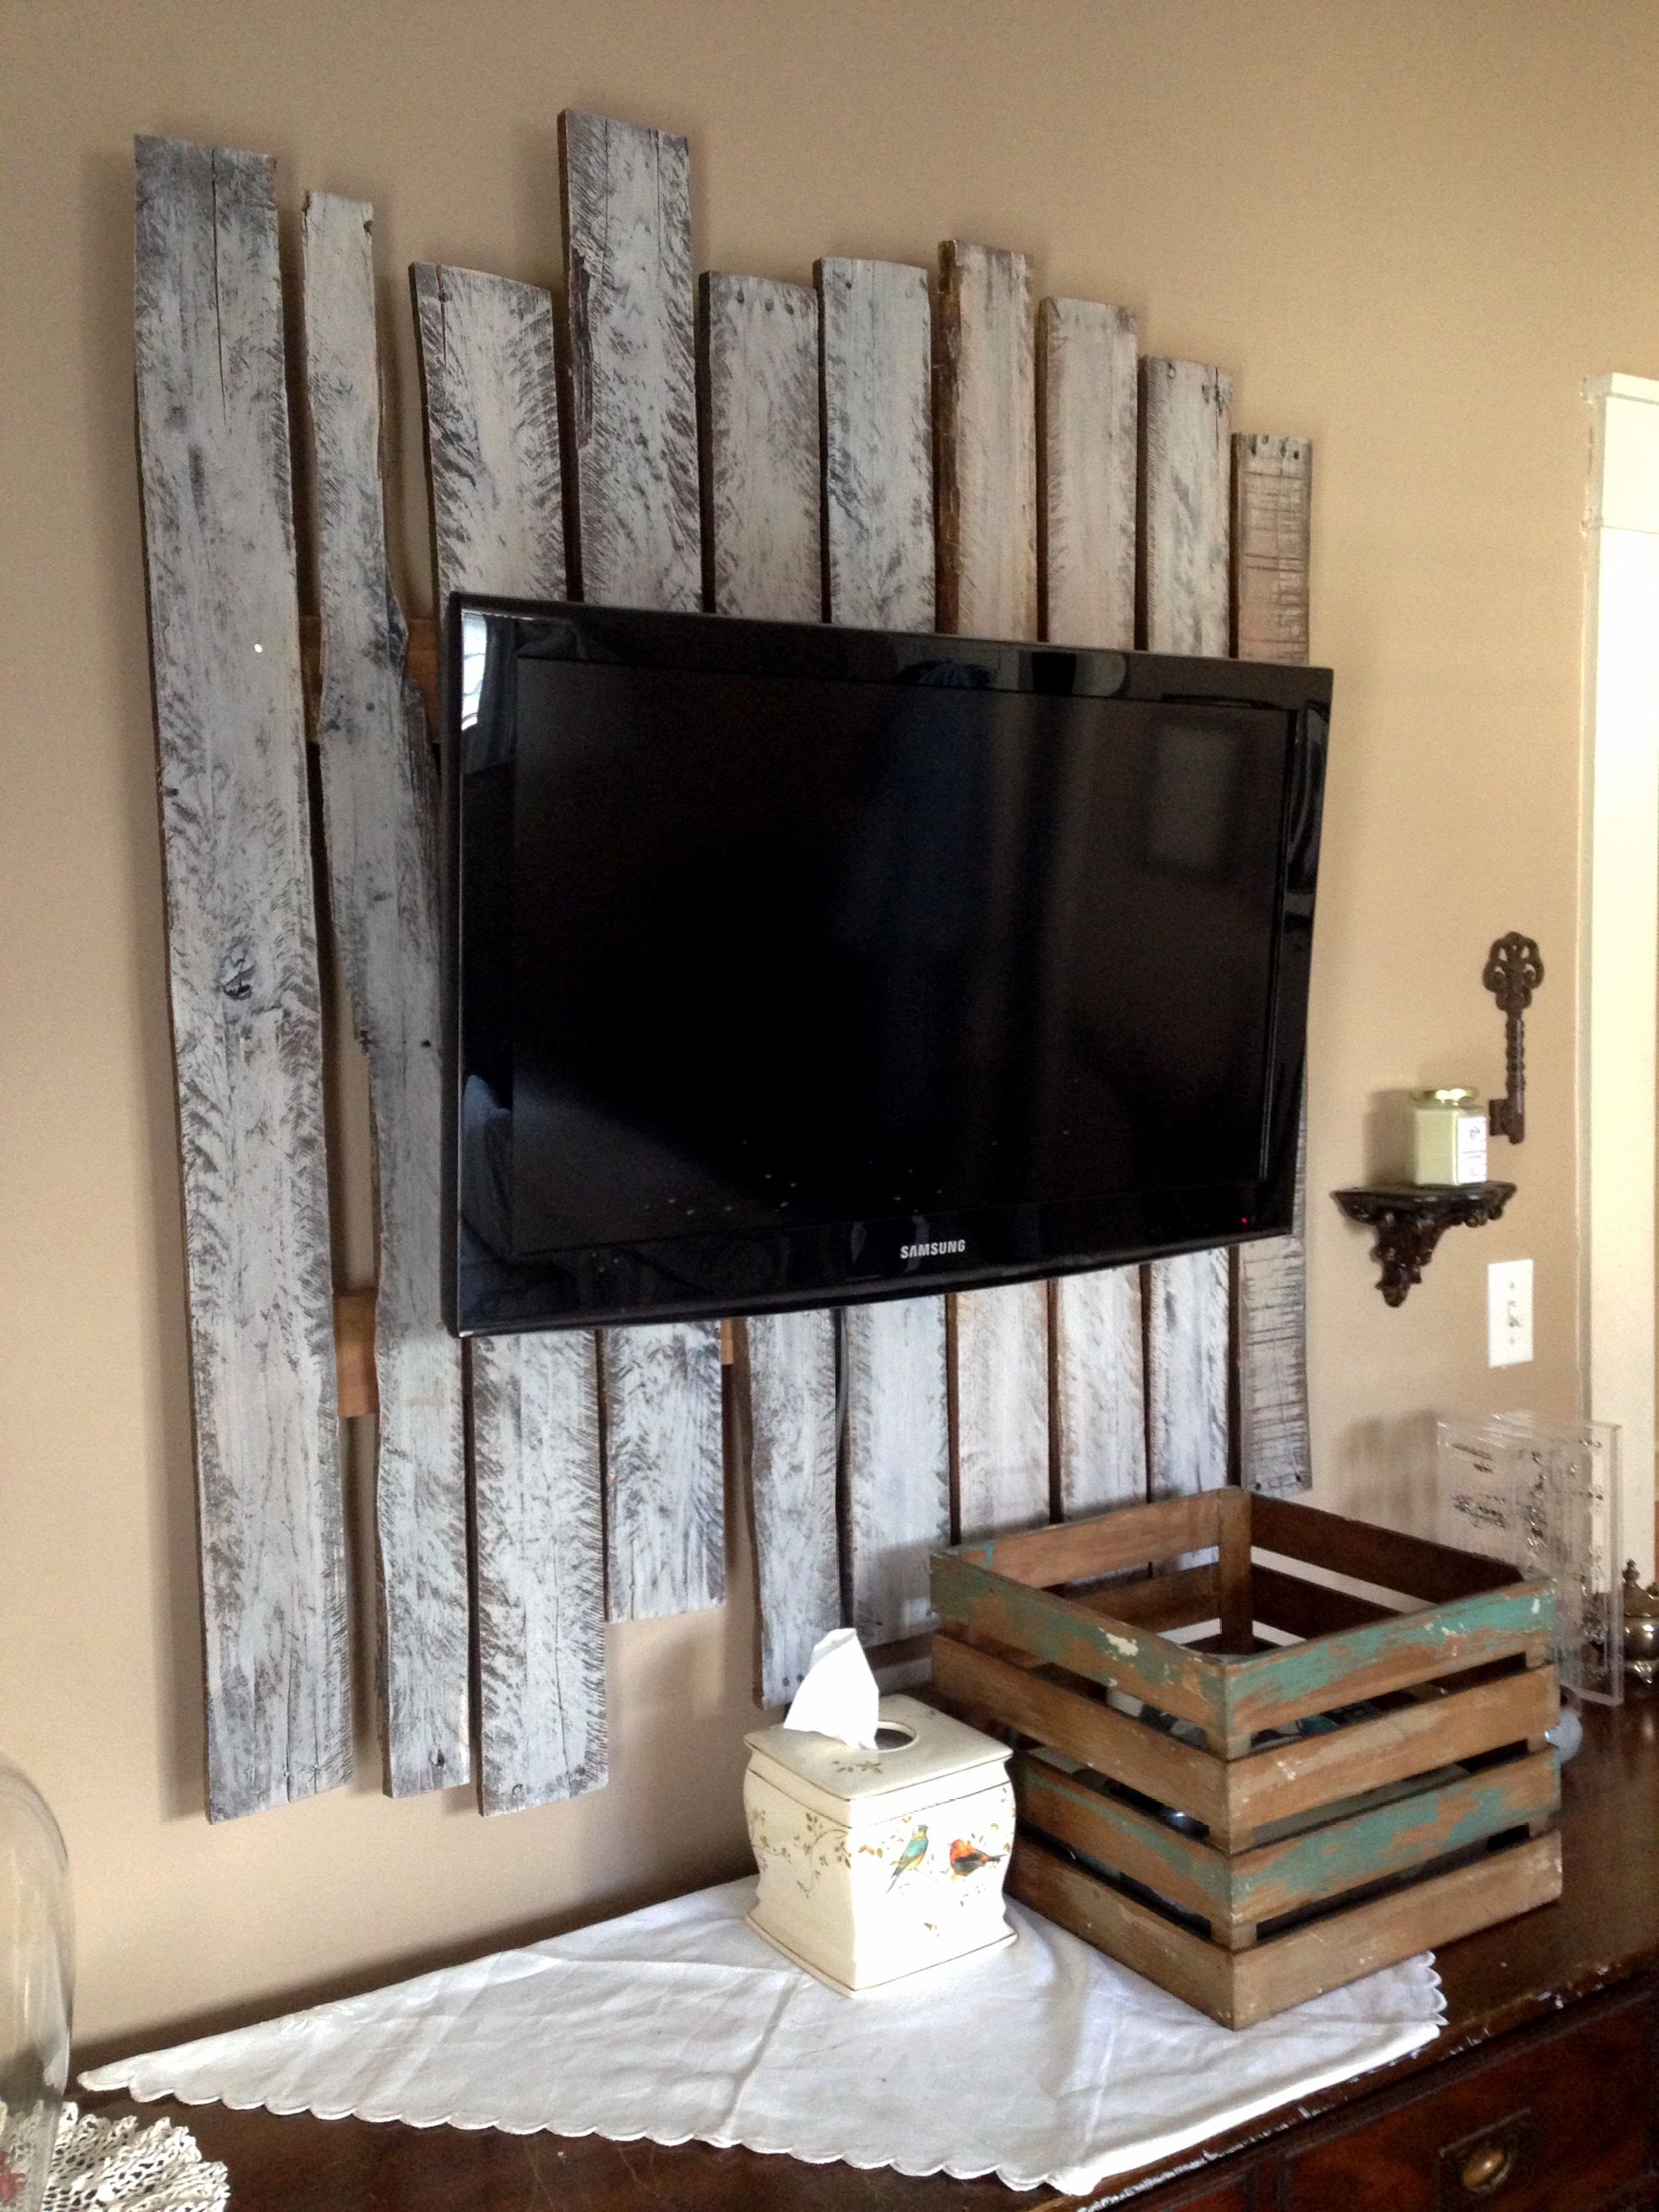 Wood Wall Behind Tv Dress Up The Wall Behind And Ugly Tv With Pallet Wood Also Helped